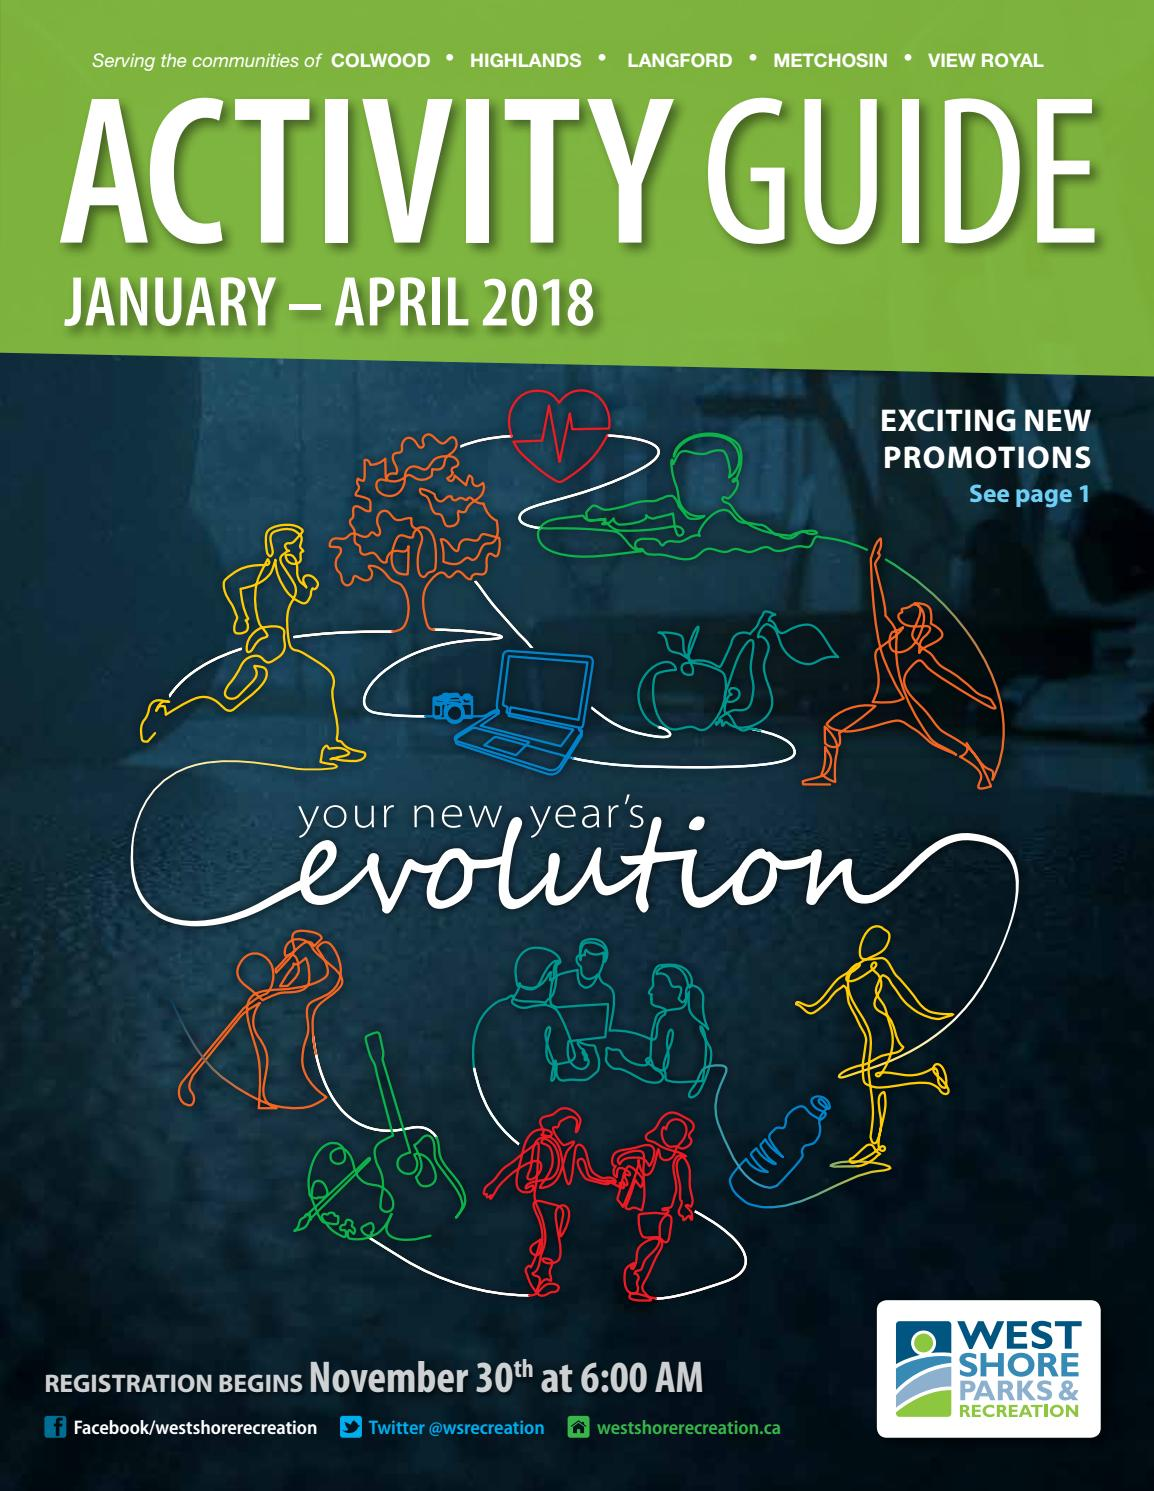 ecc771e84 Activity Guide January - April 2018 by West Shore Parks   Recreation - issuu